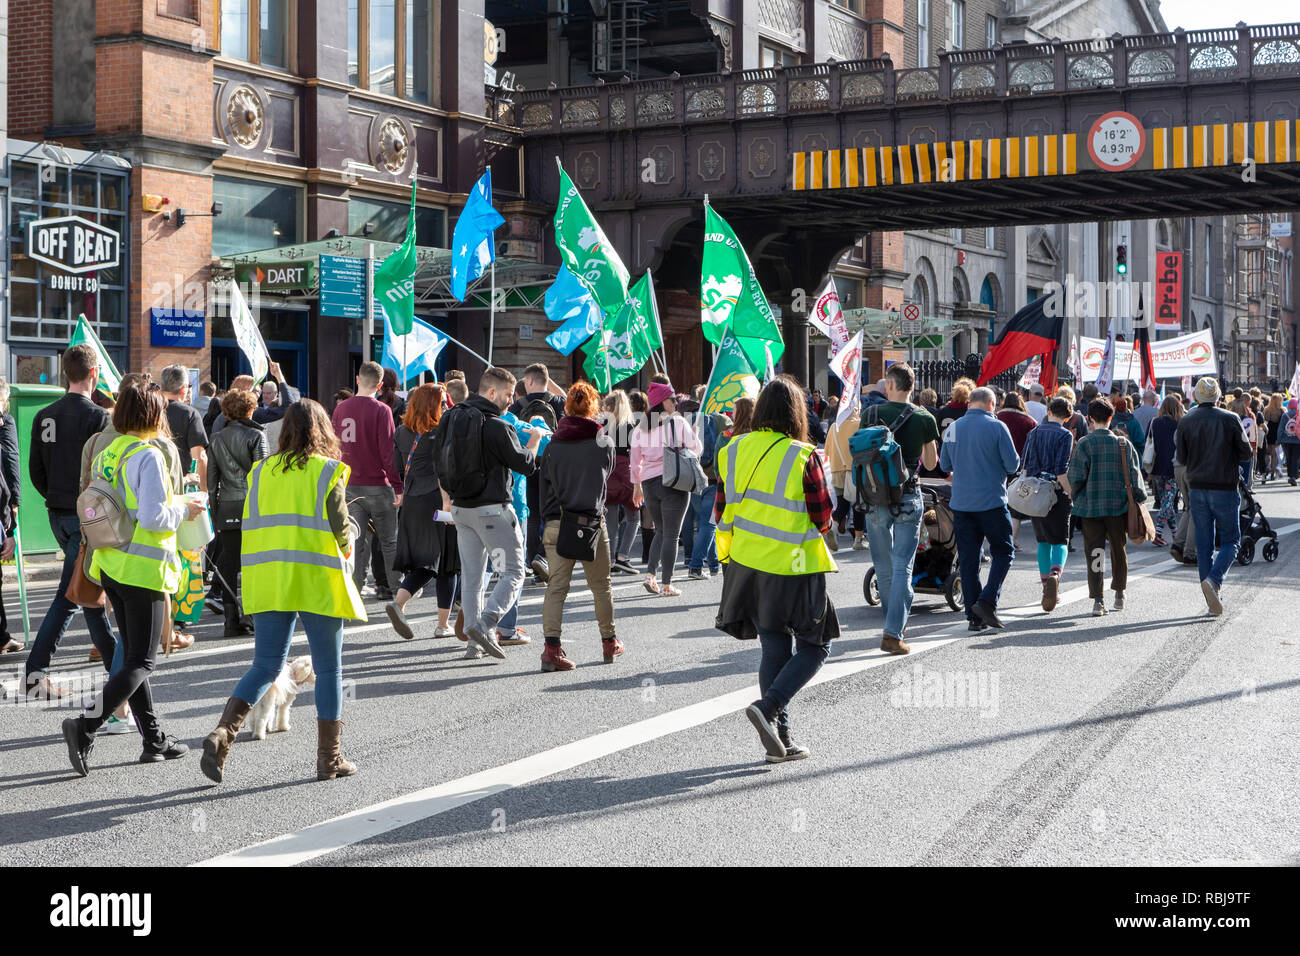 Political protesters marching in the vicinity of Pearse Station in Dublin, Ireland. - Stock Image